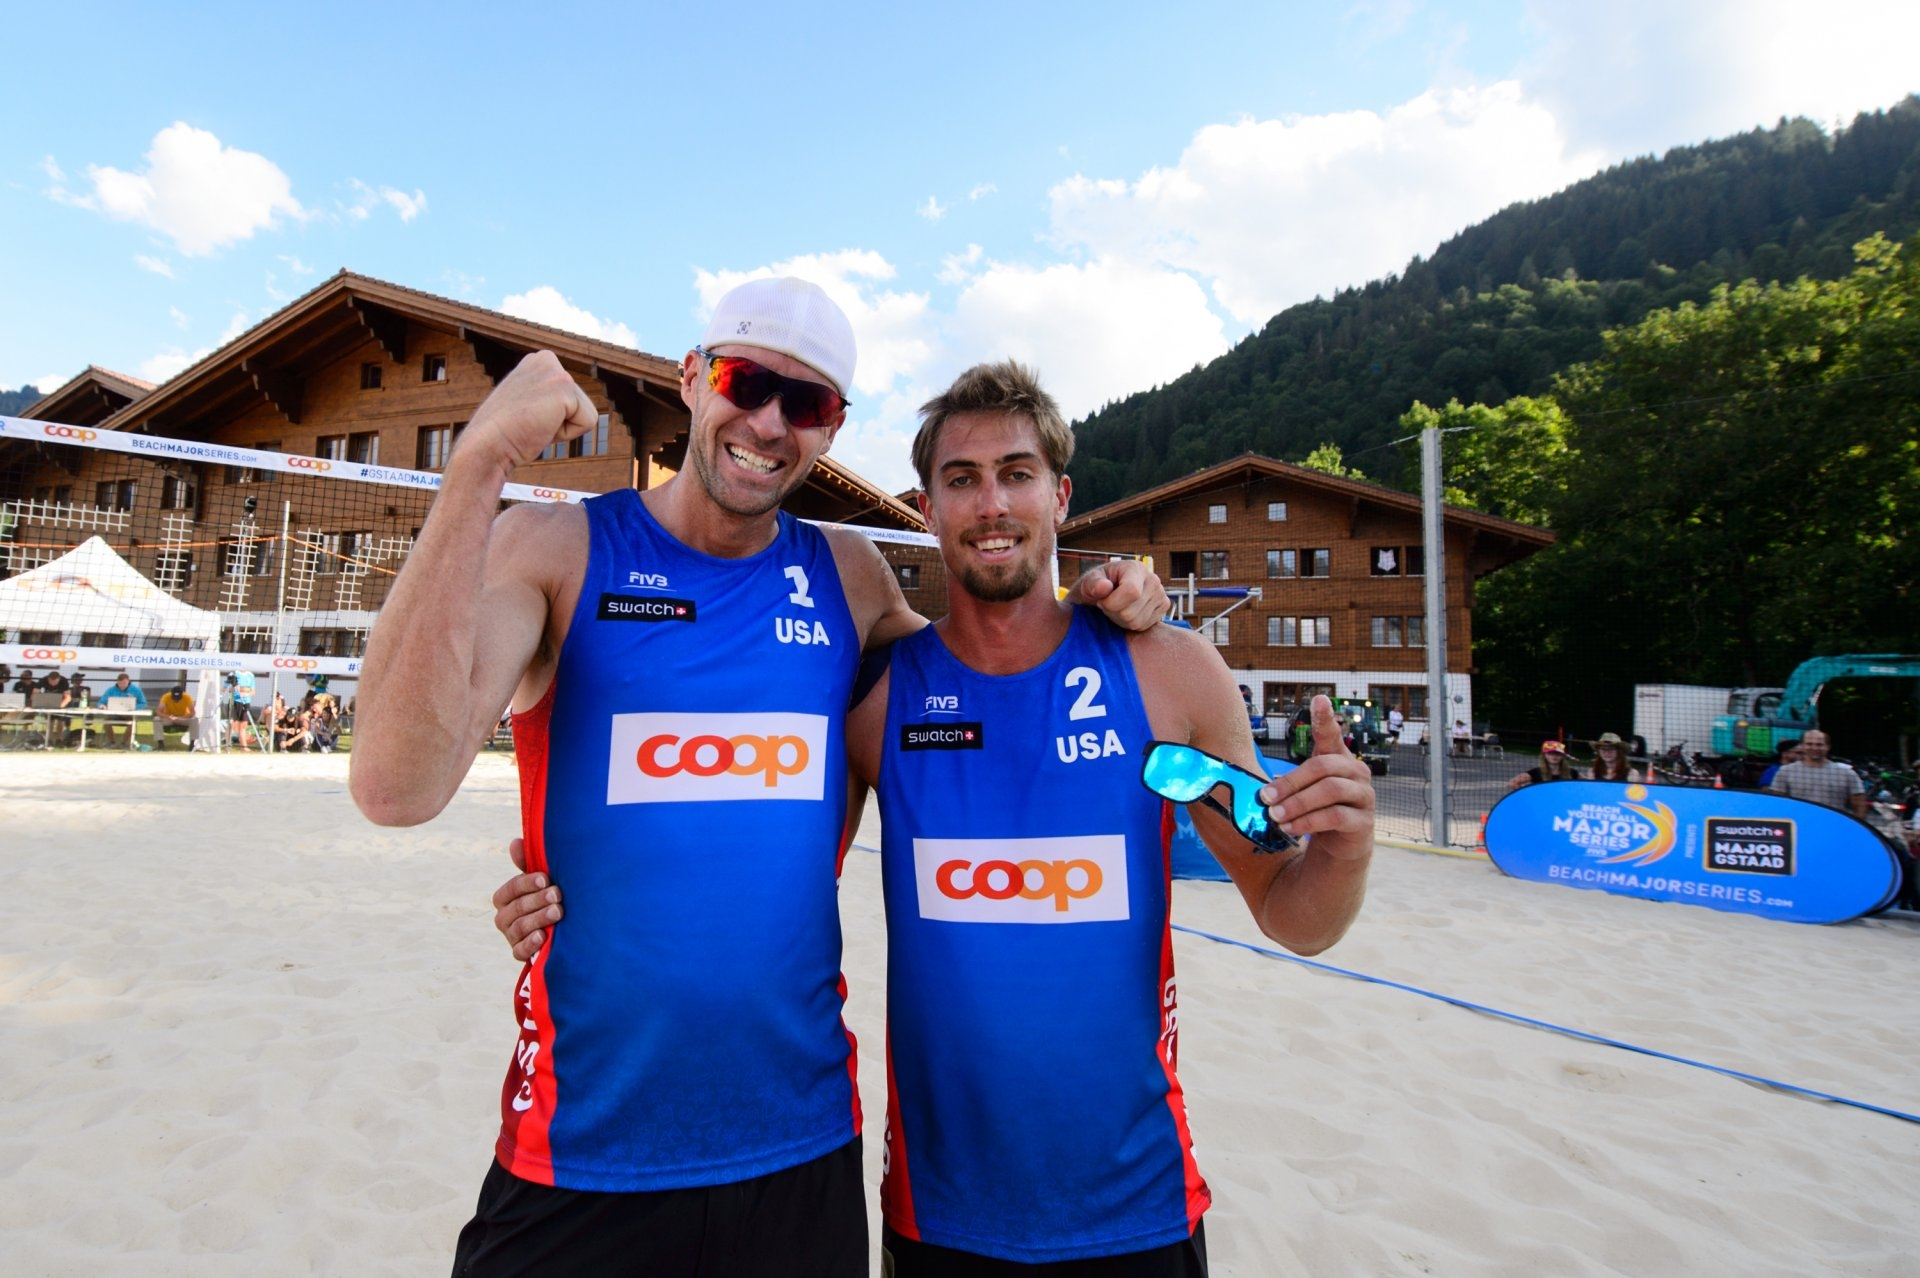 Gibb and Crabb had their first semifinal appearance together in Gstaad